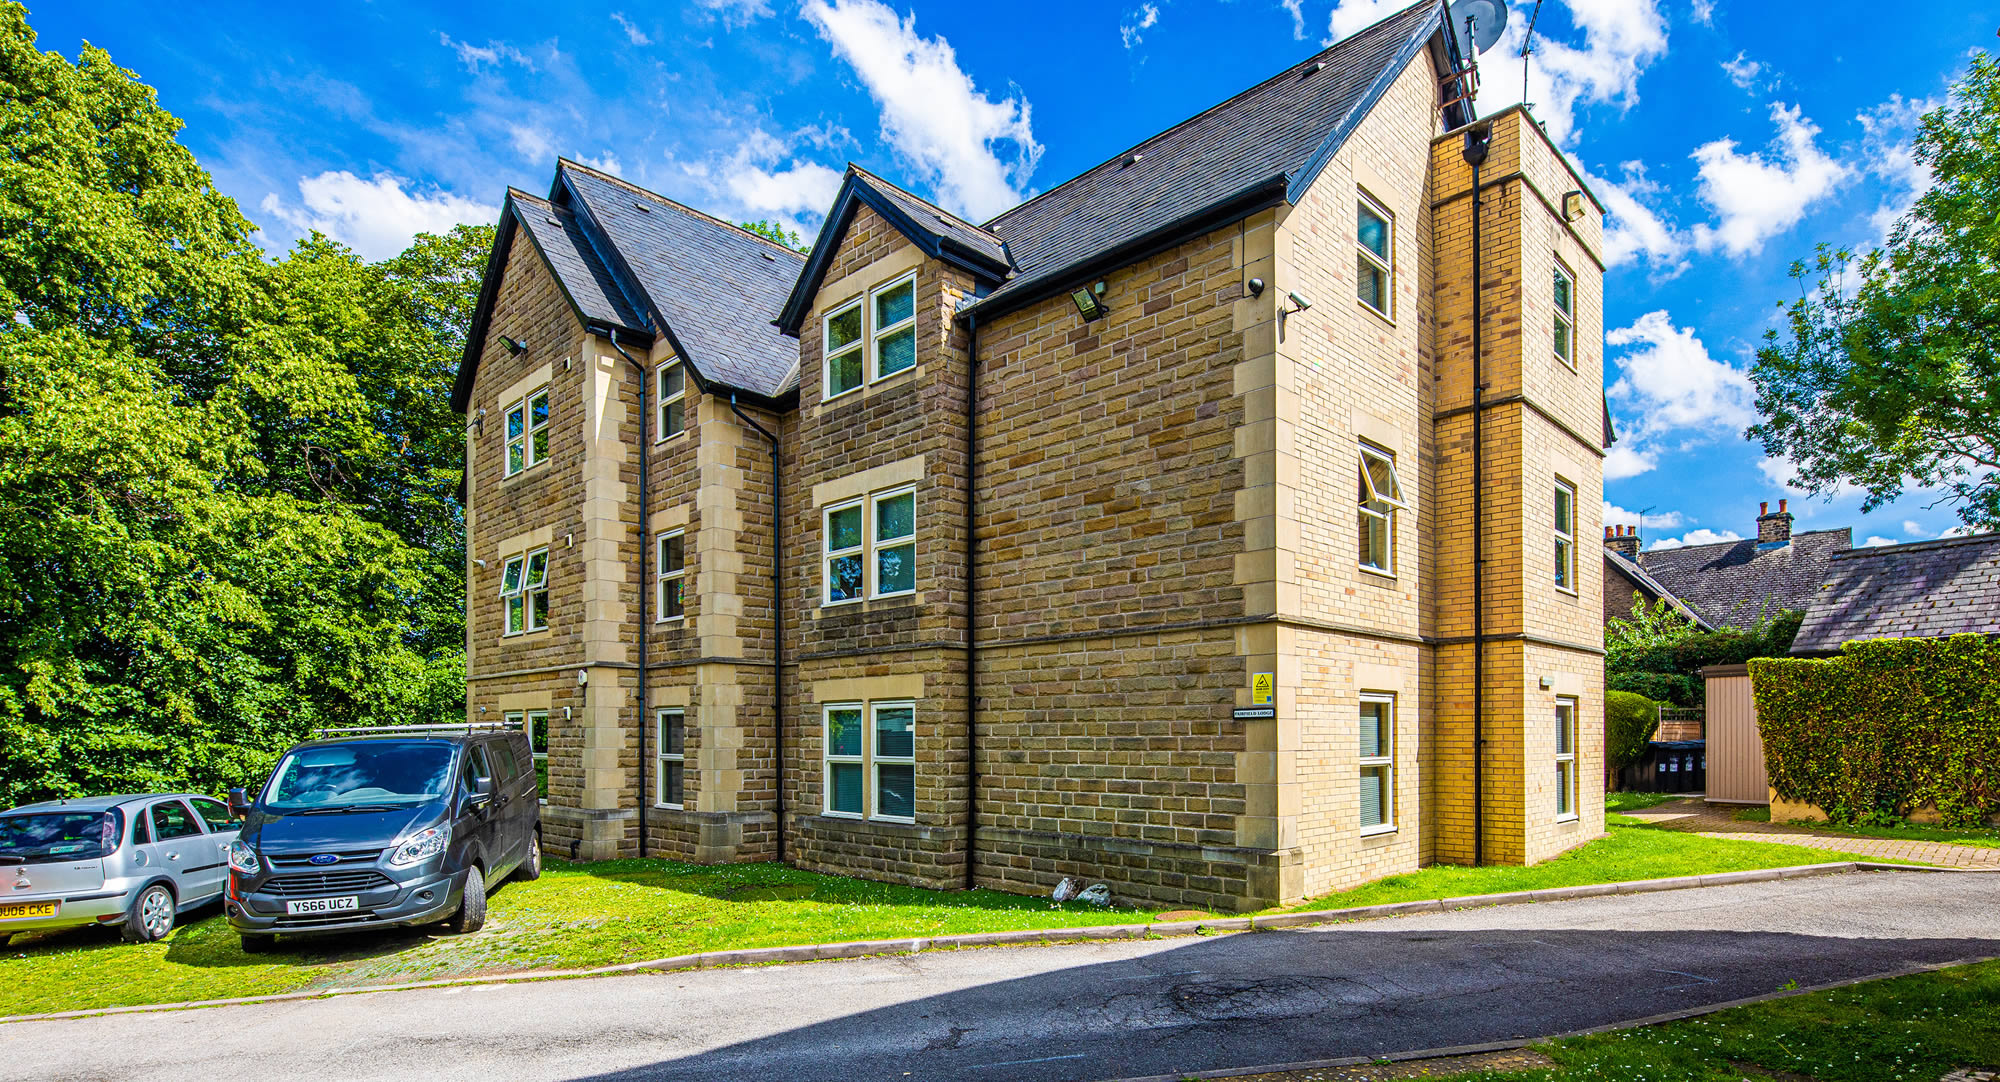 Fairfield Lodge Student Accommodation